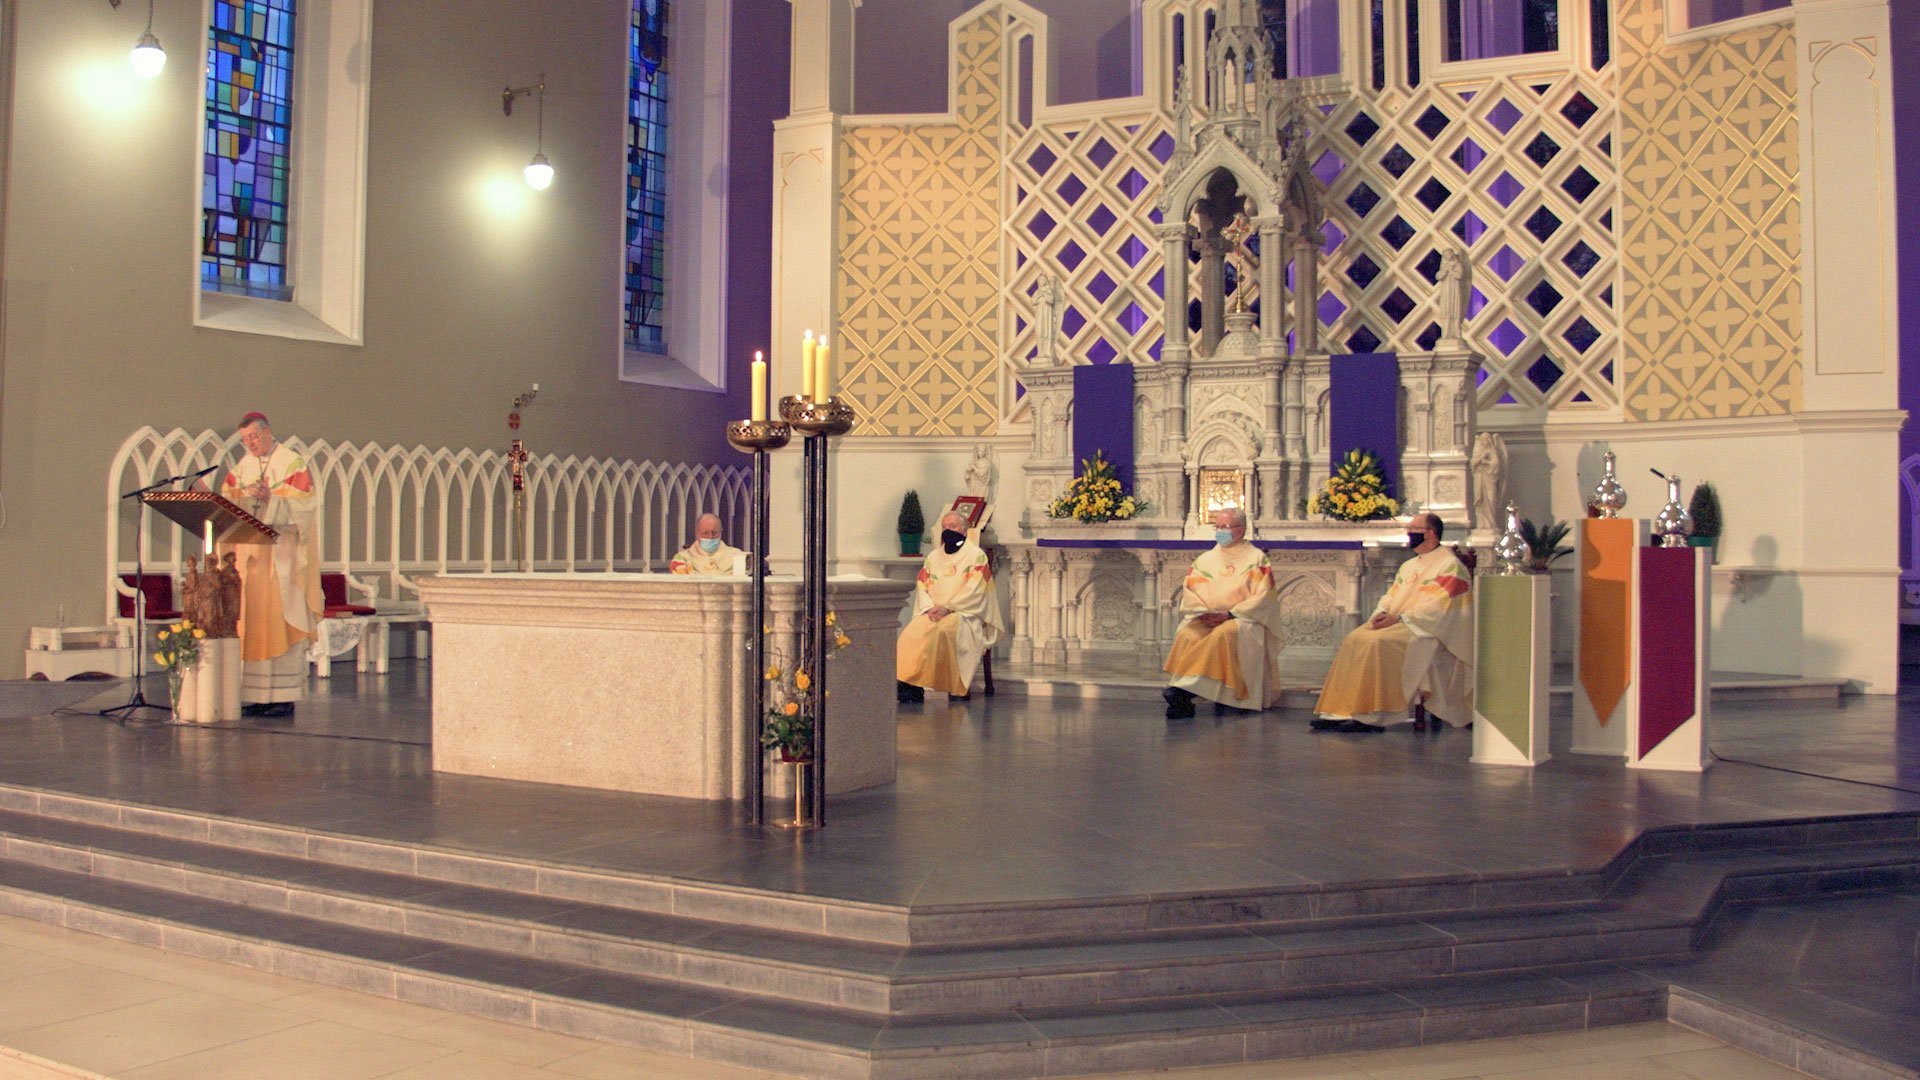 This past 12 months has changed the face of parish for all of us – Bishop Nulty